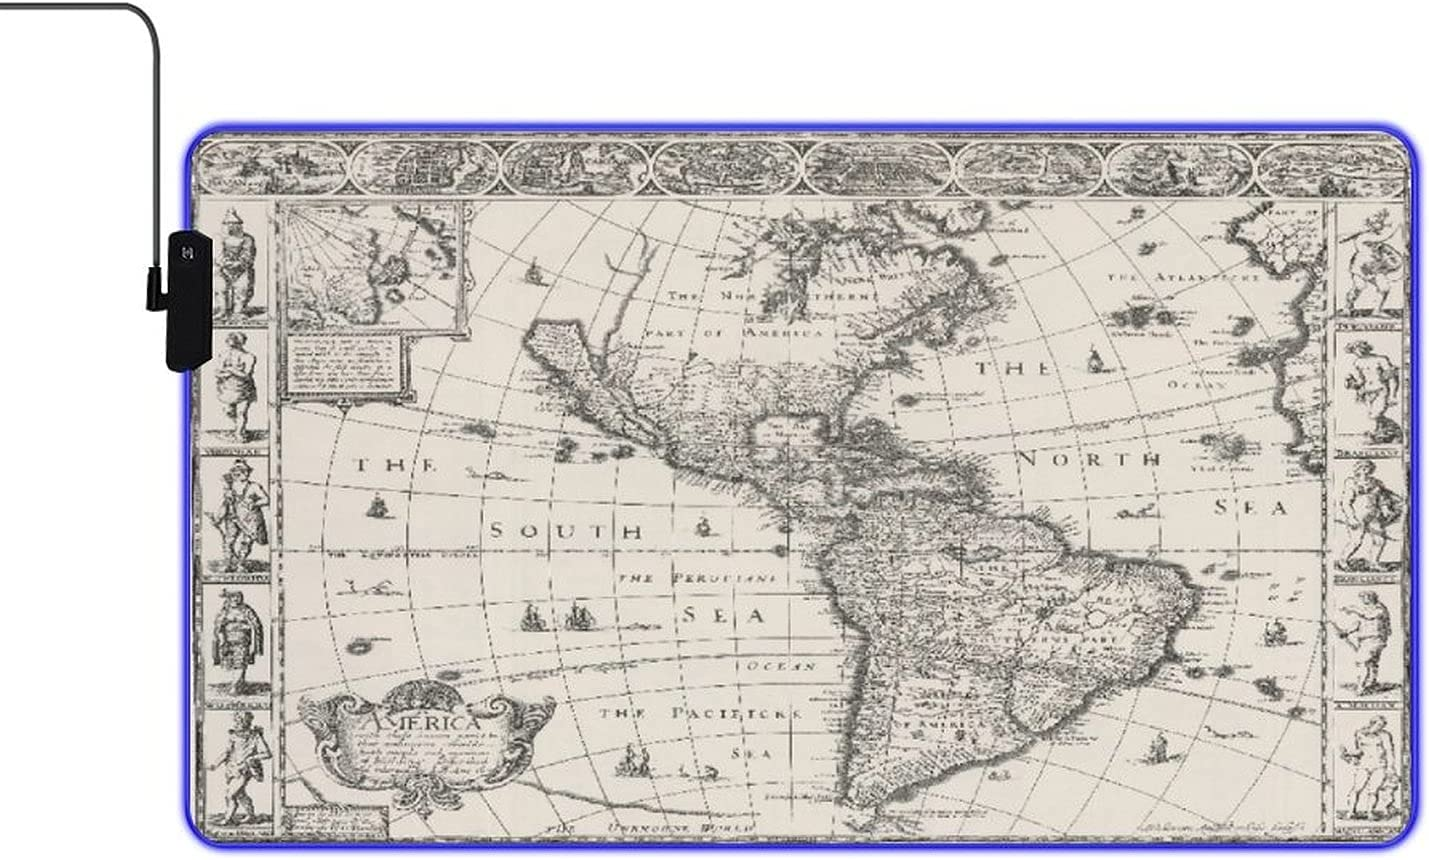 MISCERY Glowing Mouse Pad 1626 Antique Gifts North and South Latest item Am Map of